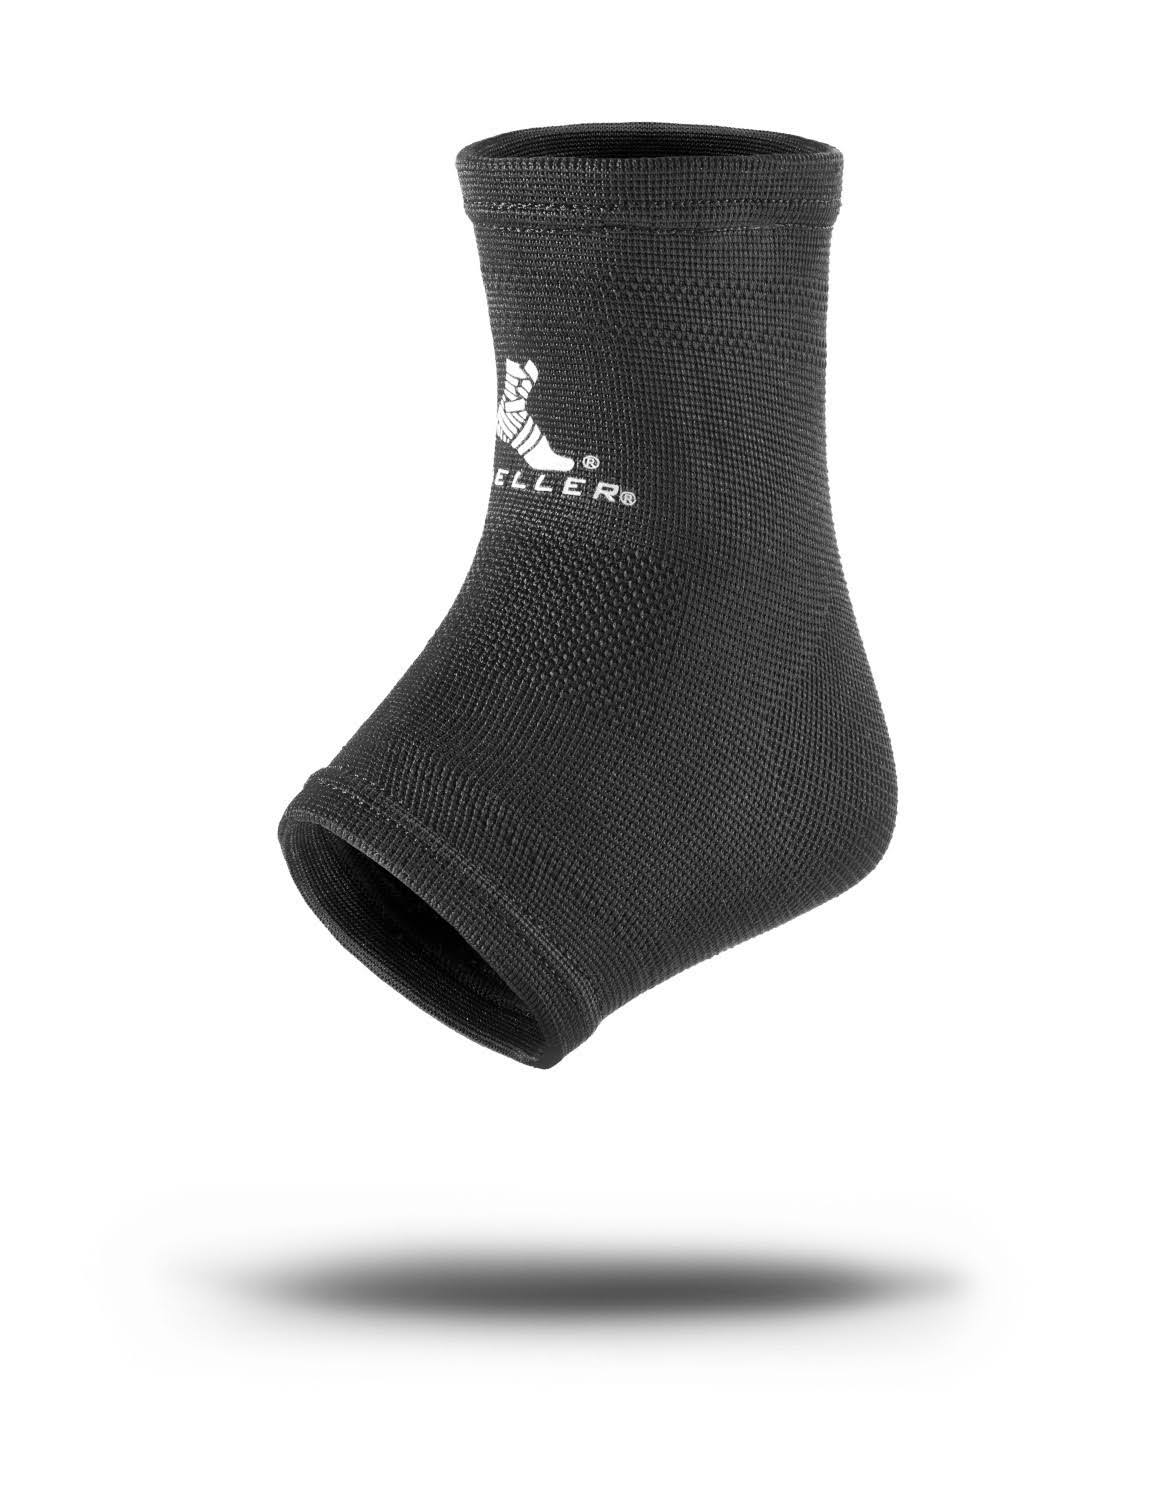 Mueller Elastic Ankle Support - Medium Size